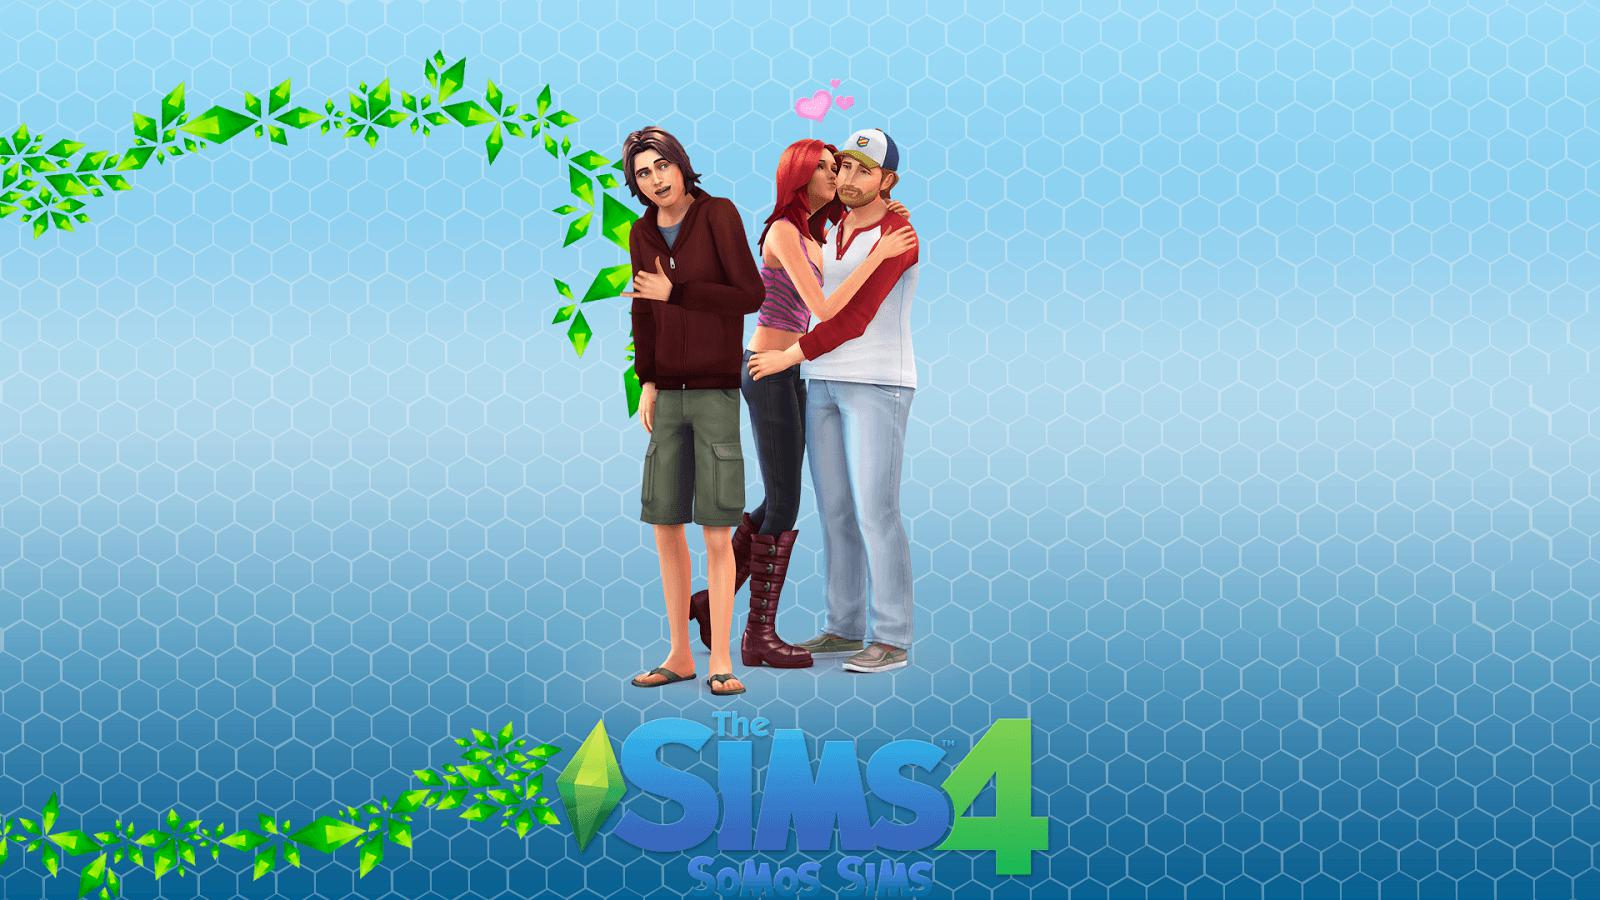 The Sims HD Desktop Wallpaper for K Ultra HD TV